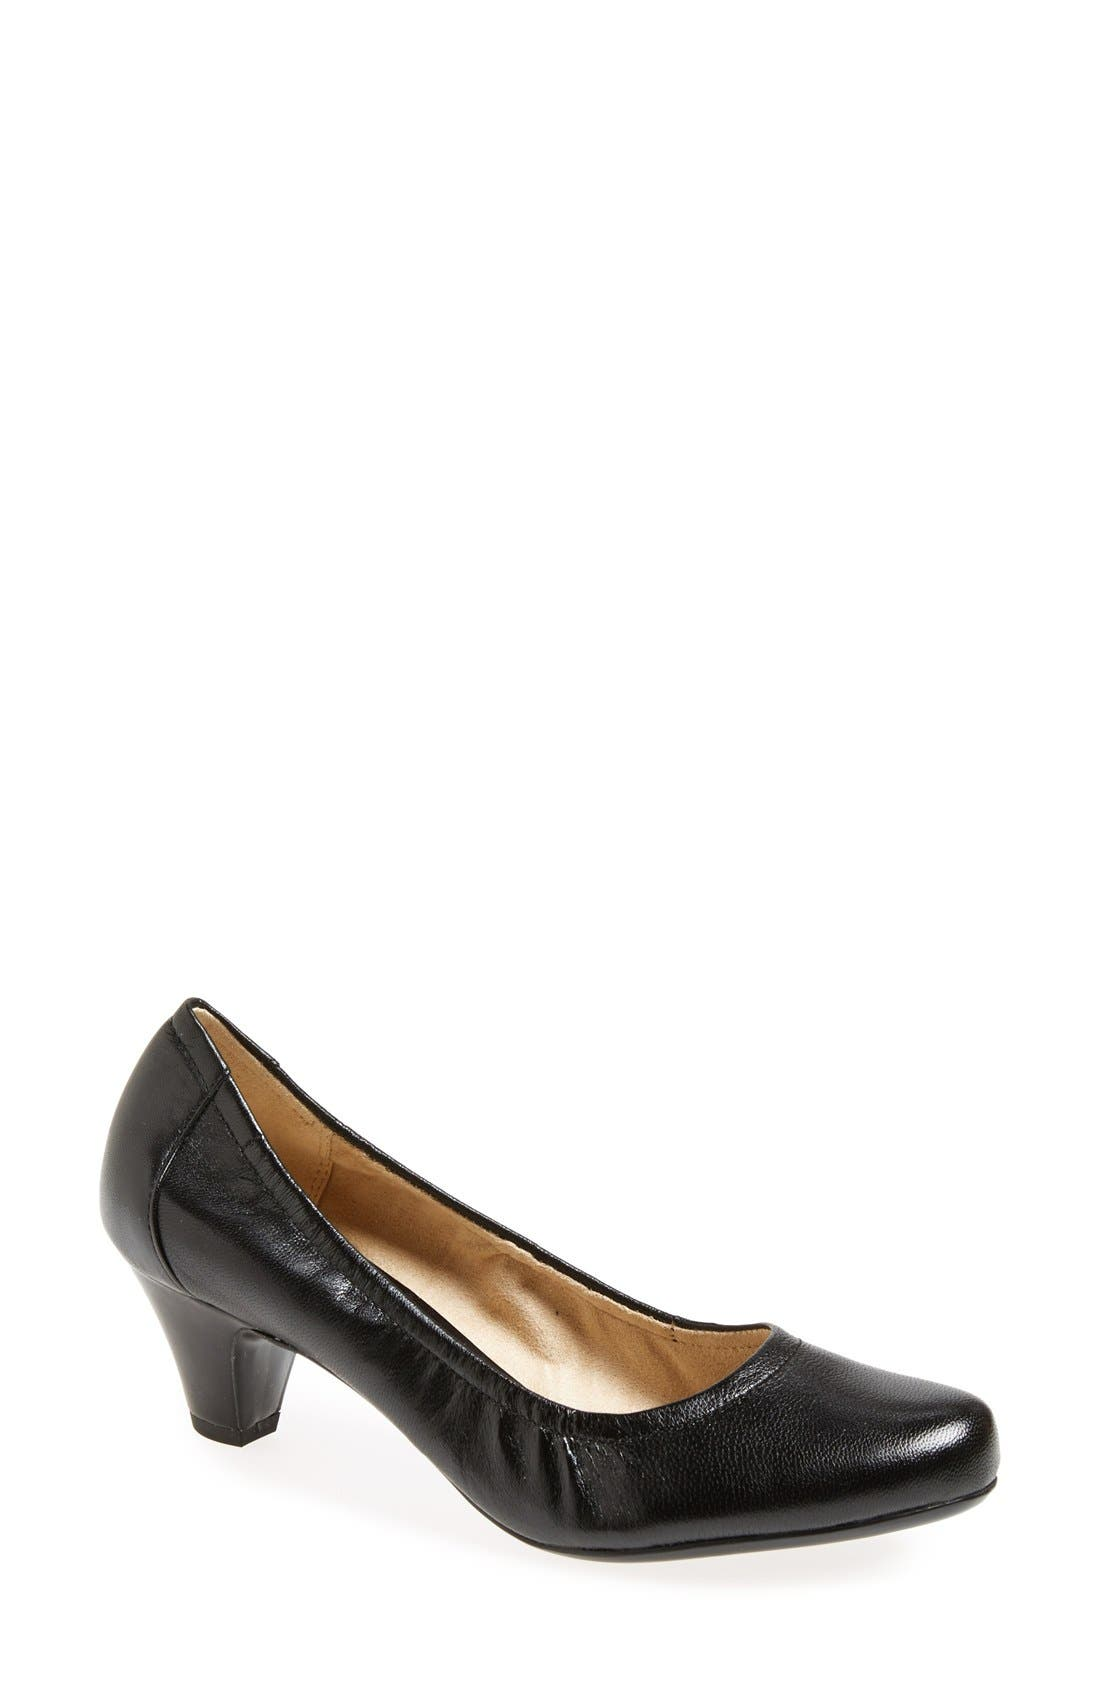 'Stargaze' Round Toe Pump,                         Main,                         color, 001